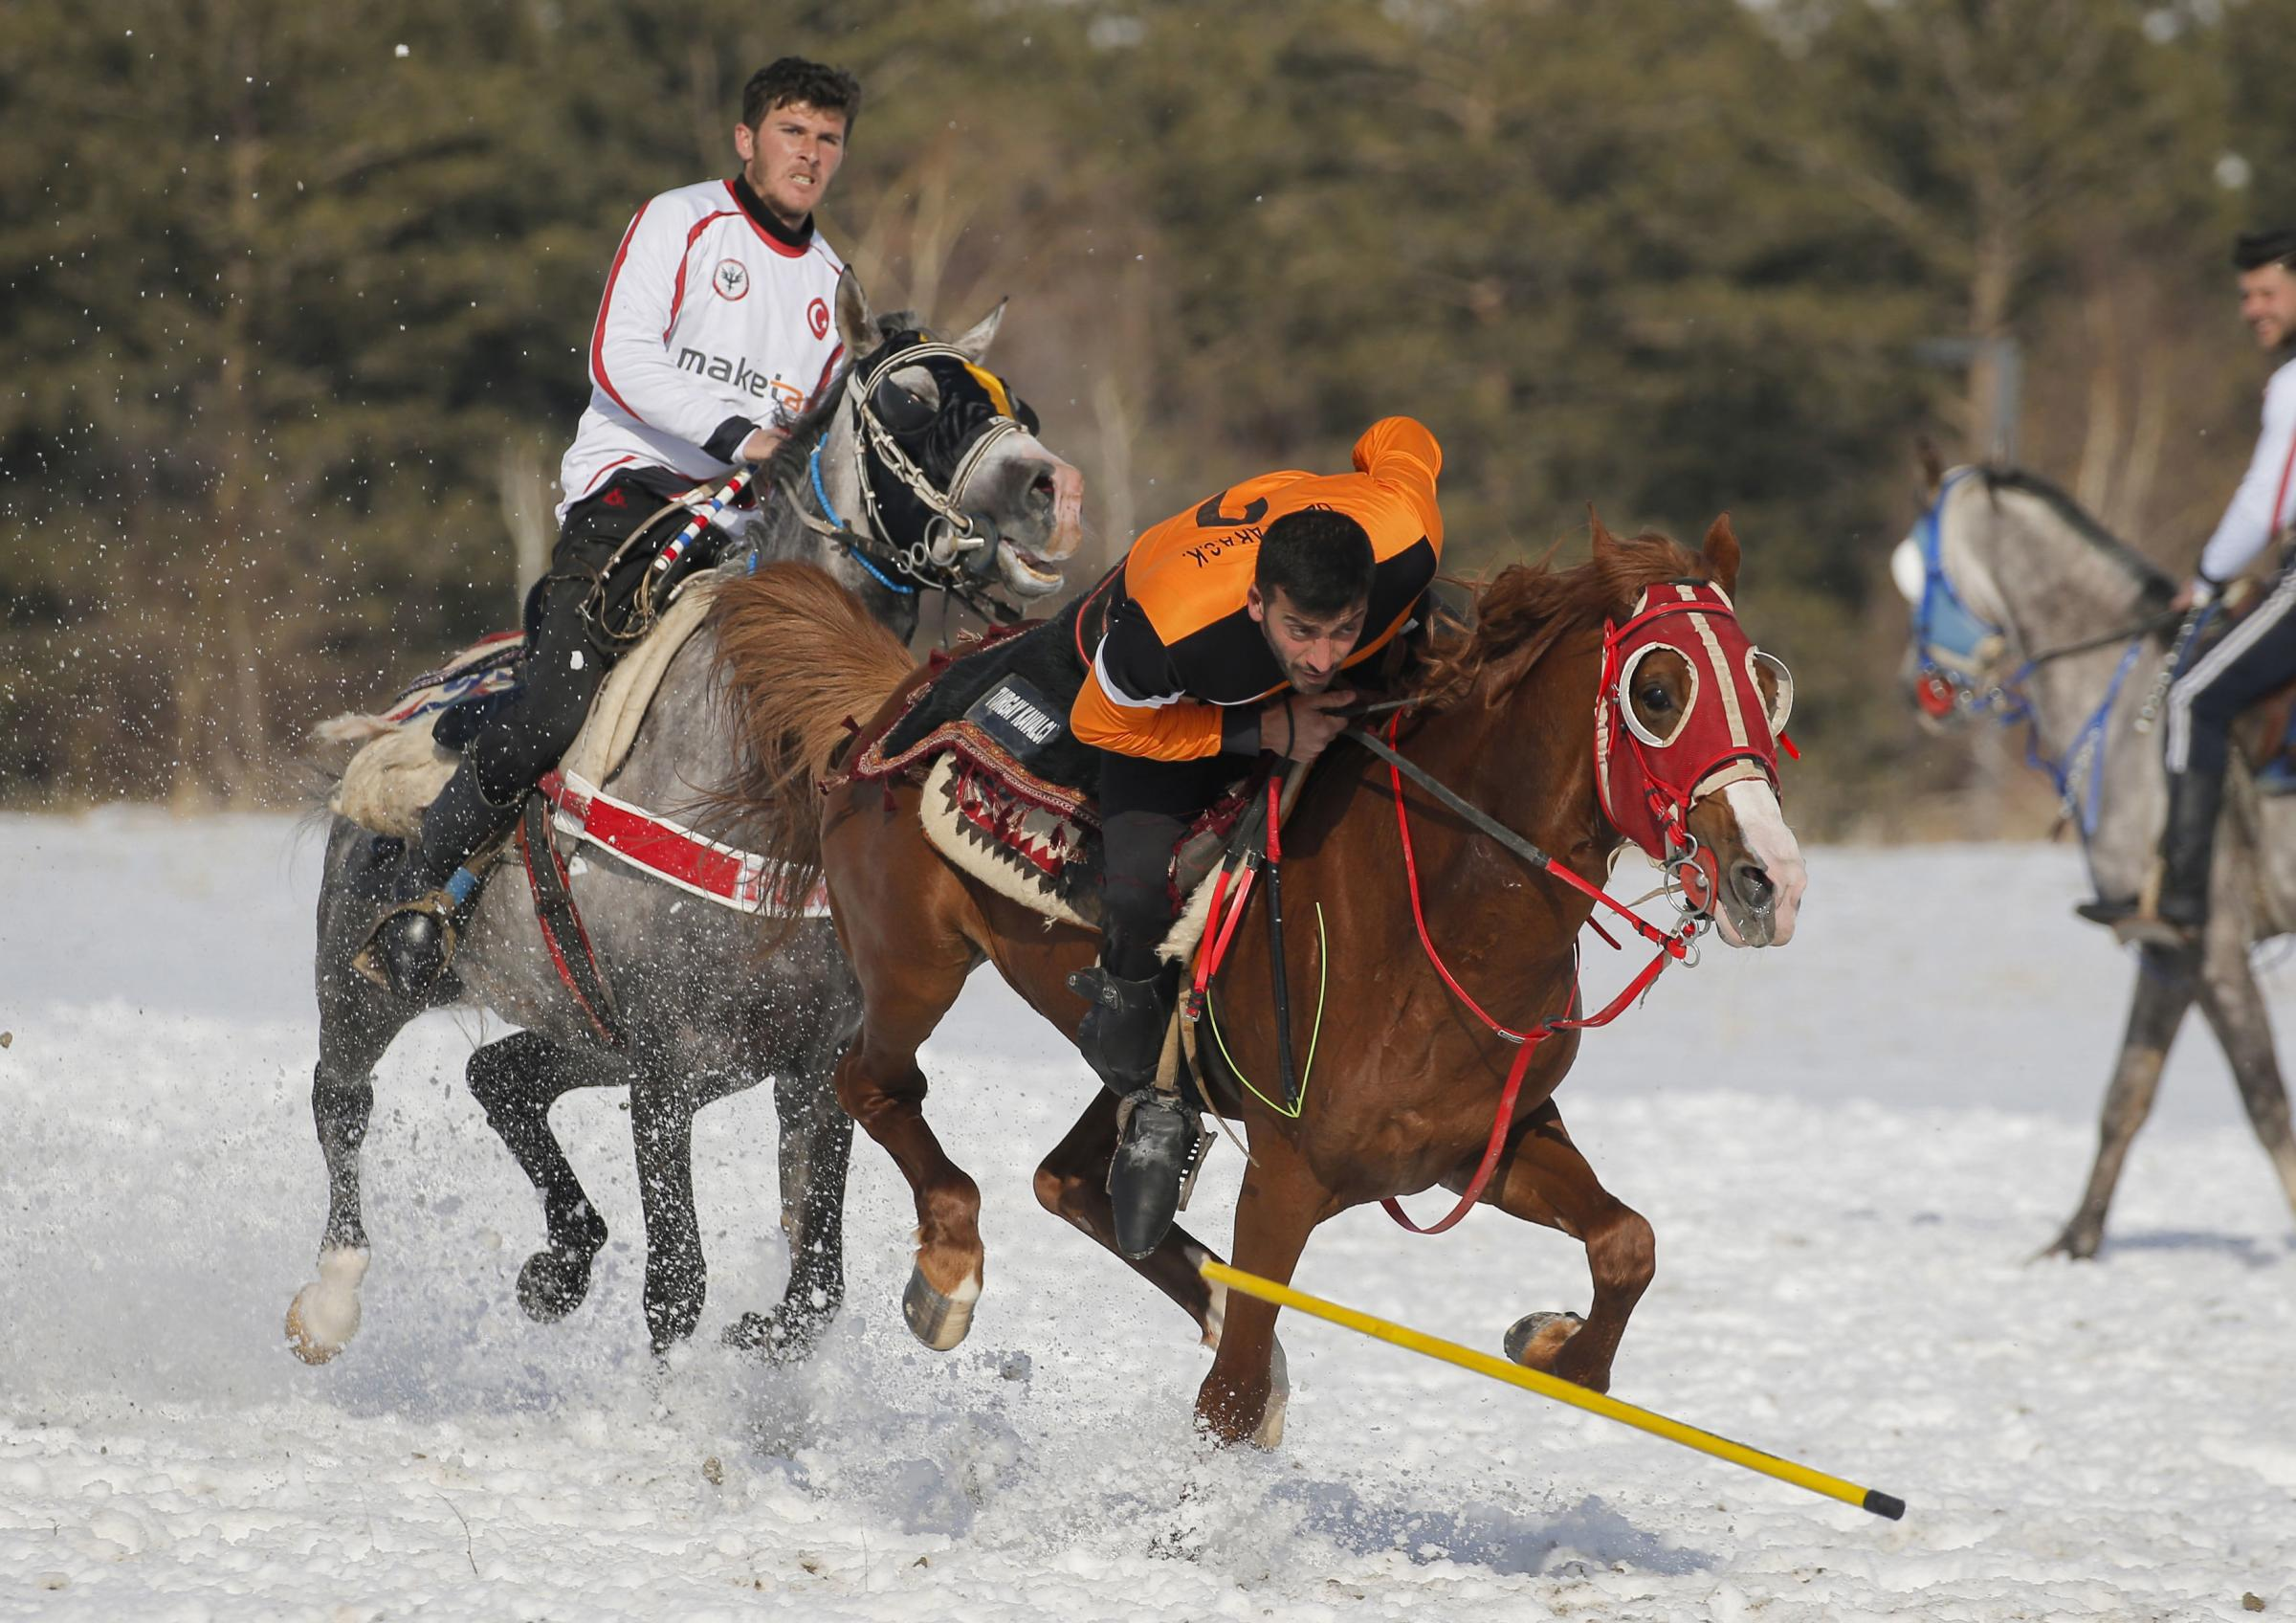 A rider dodges the javelin thrown by an opponent during a game of Cirit, a traditional Turkish equestrian sport that dates back to the martial horsemen who spearheaded the historical conquests of central Asia's Turkic tribes, between the Comrades